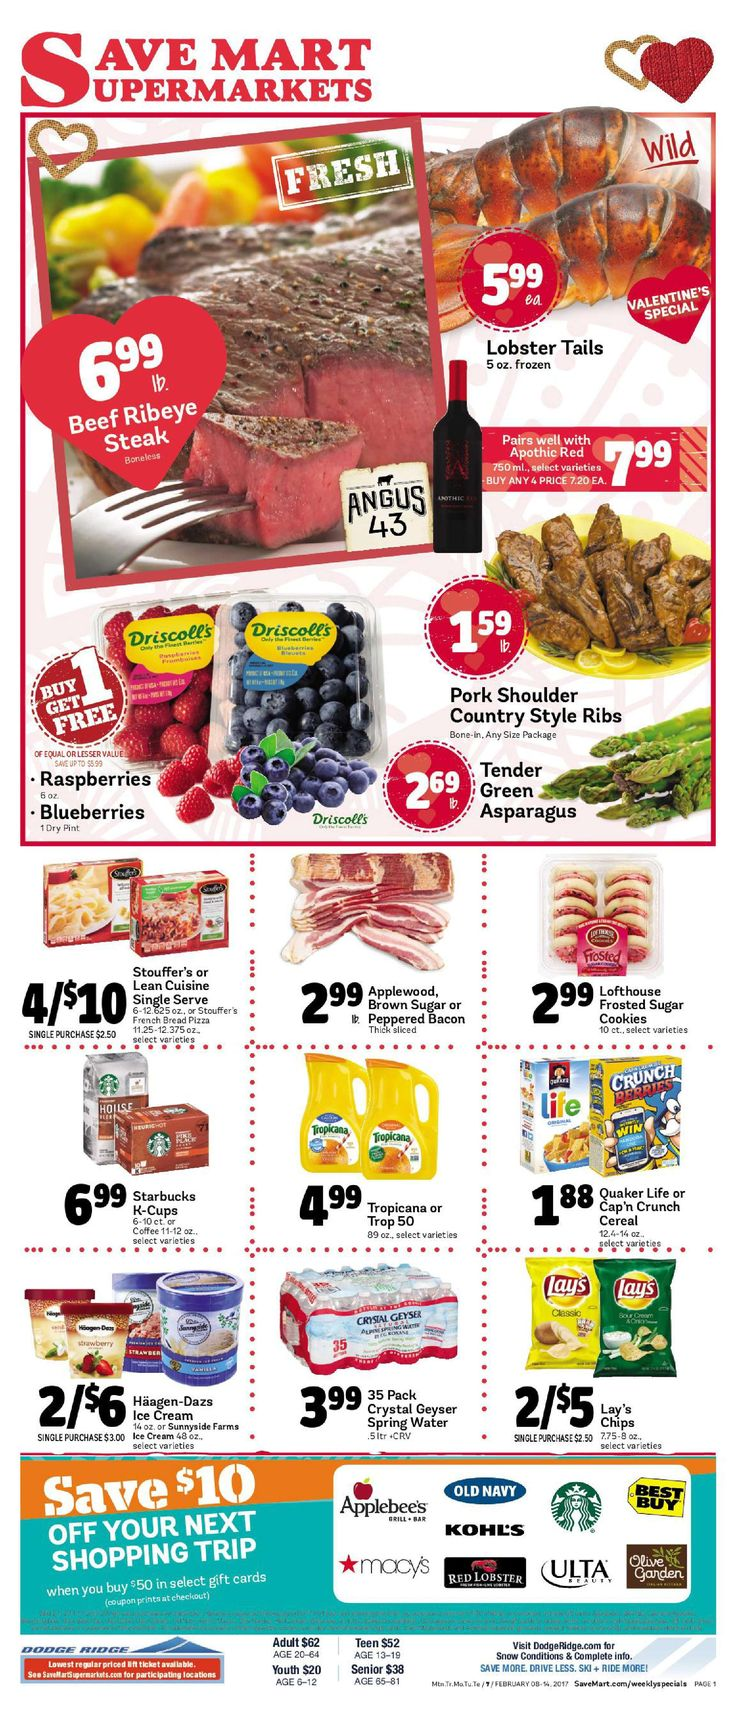 Save Mart Weekly ad February 8 - 14, 2017 - http://www.olcatalog.com/save-mart/save-mart-weekly-ad.html